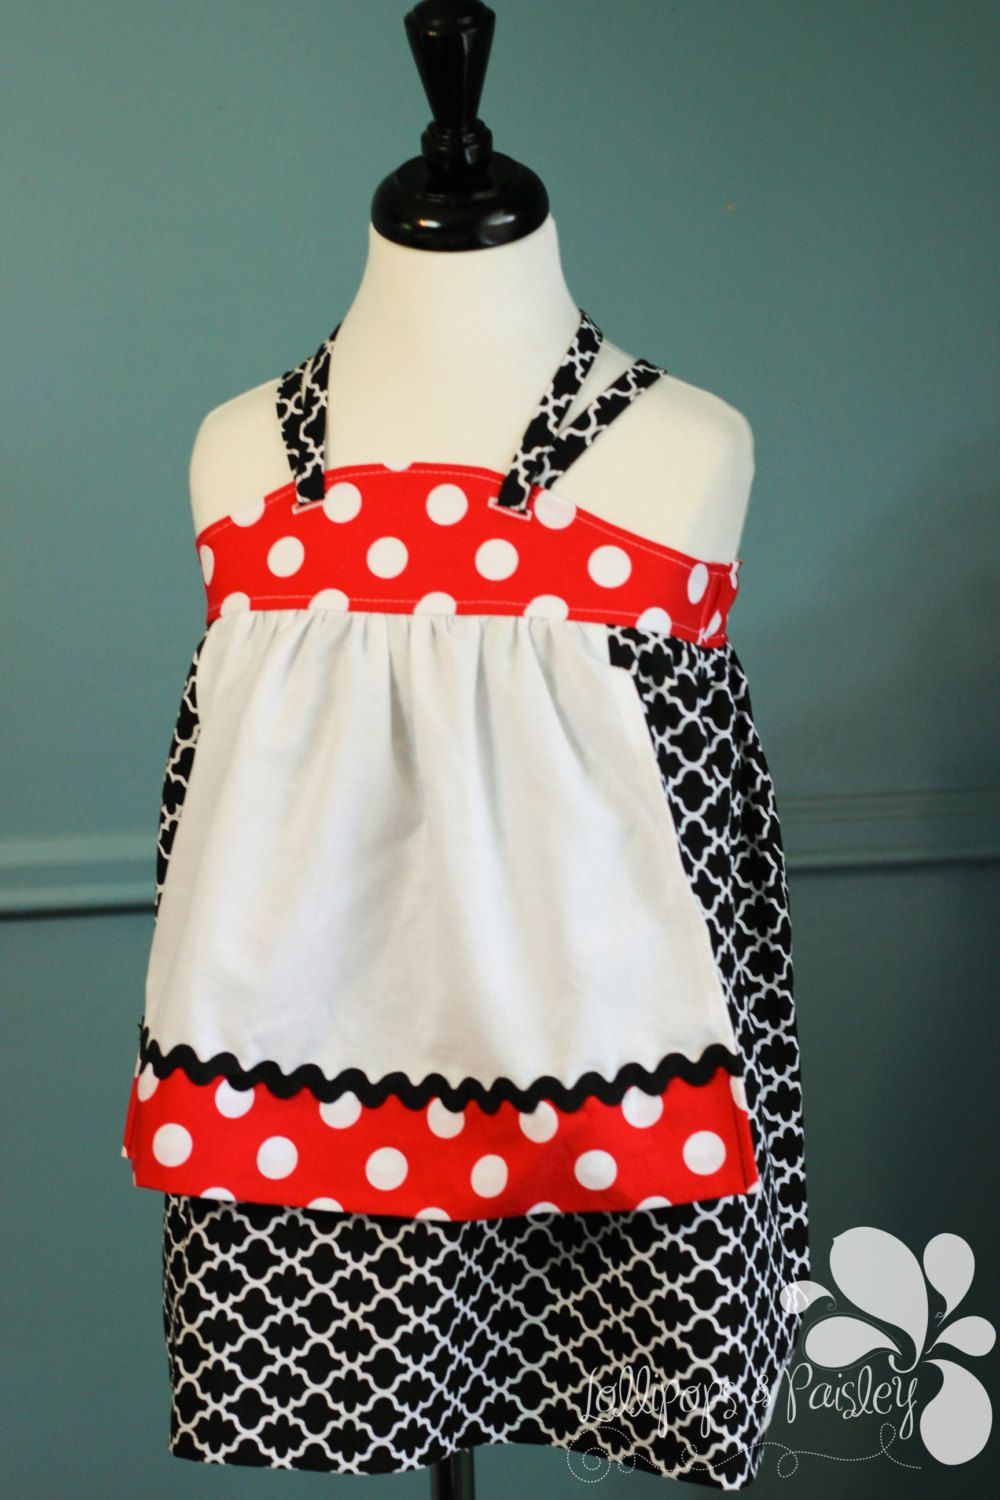 Fall Layering Katie Ellie Style Dress Apron Halter Tie Knot Red White Black Made to Order Custom Back to School Boutique by LollipopsPaisley on Etsy